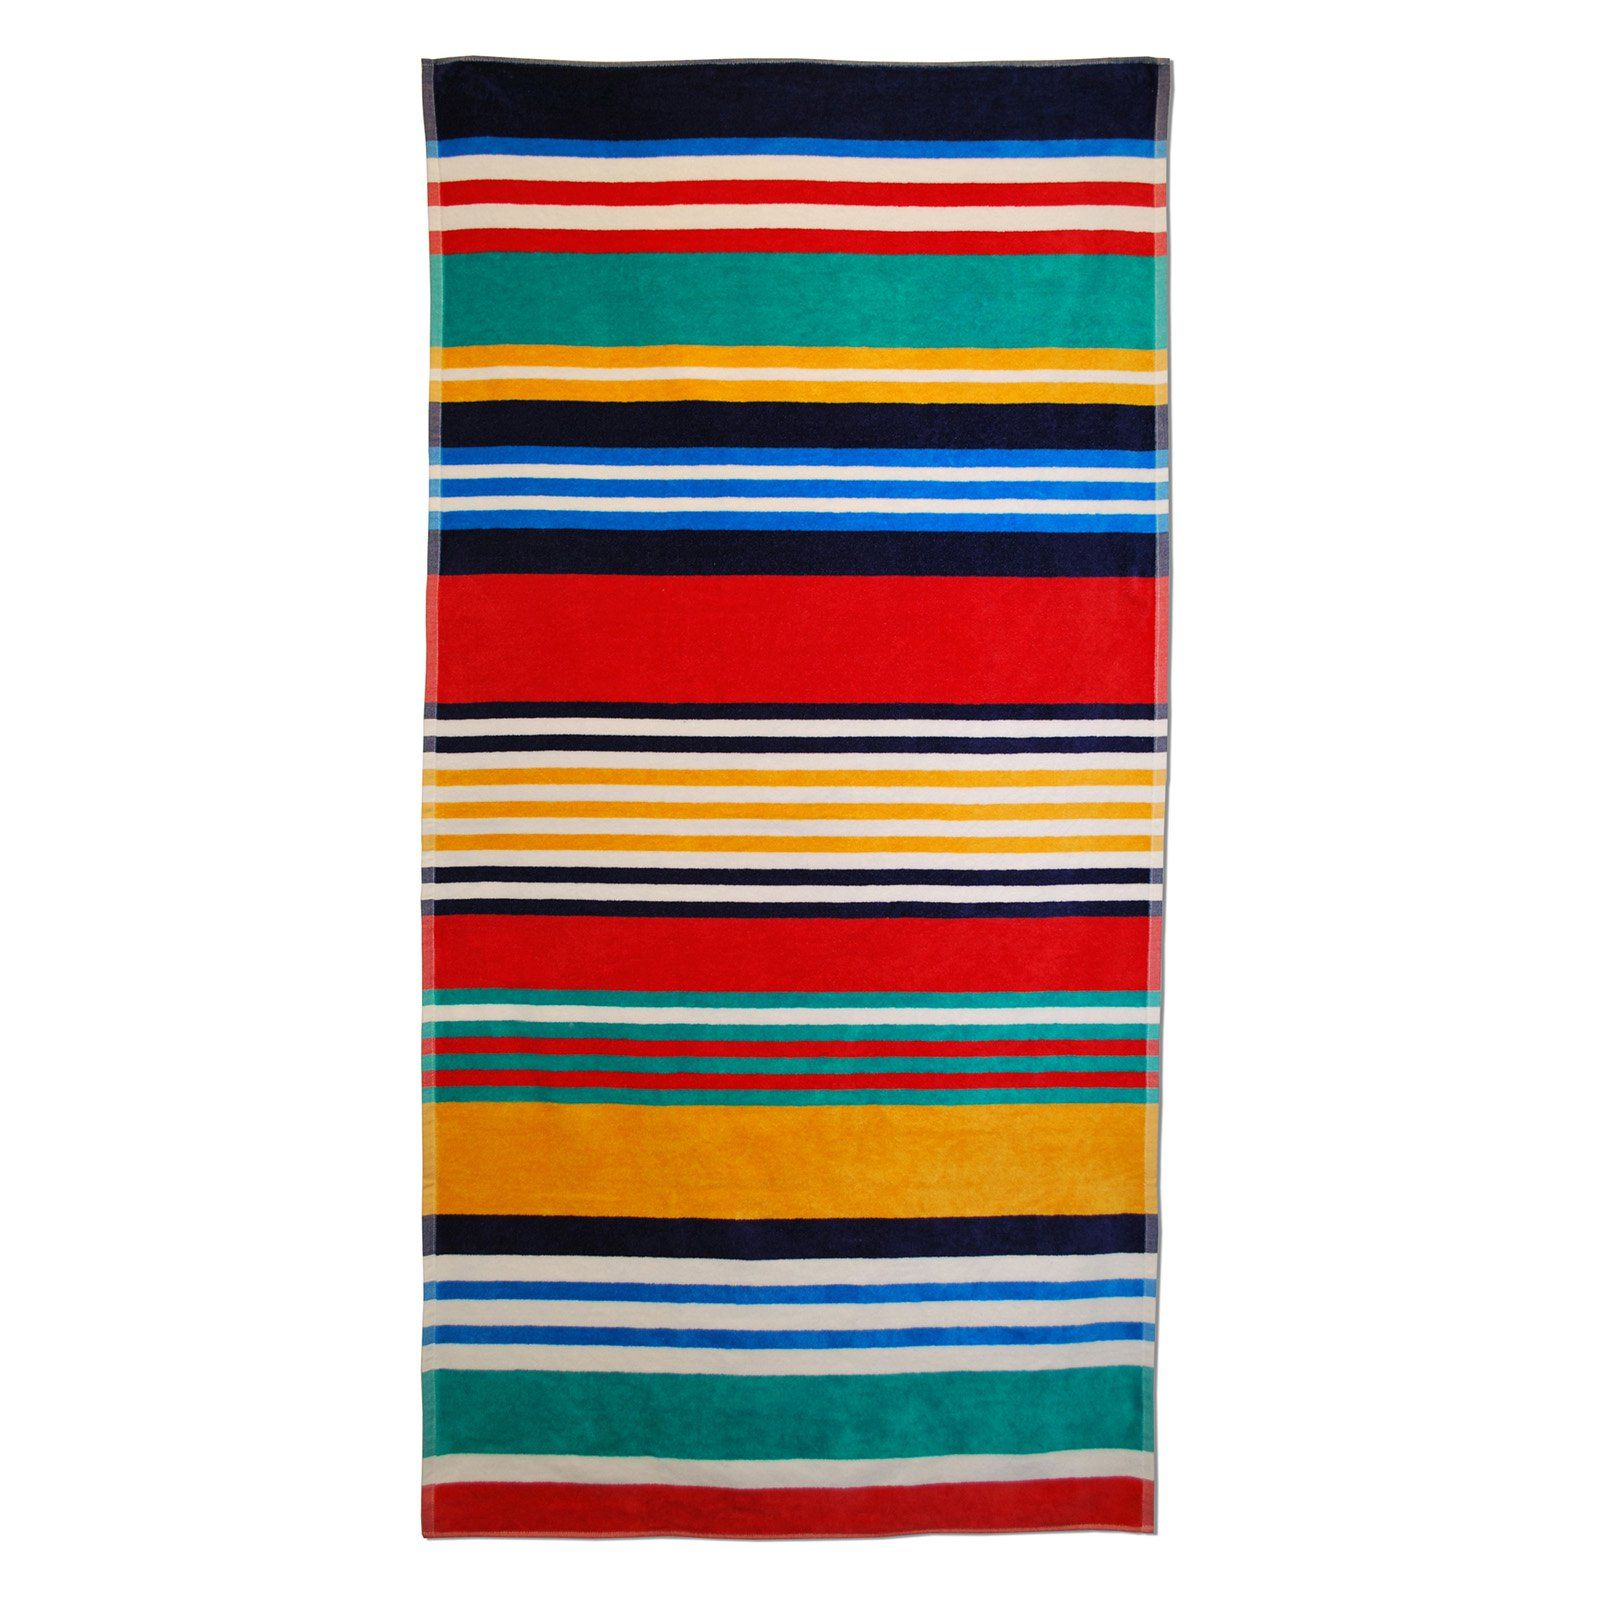 Superior Thick And Plush Multicolor Stripes Beach Towel Striped